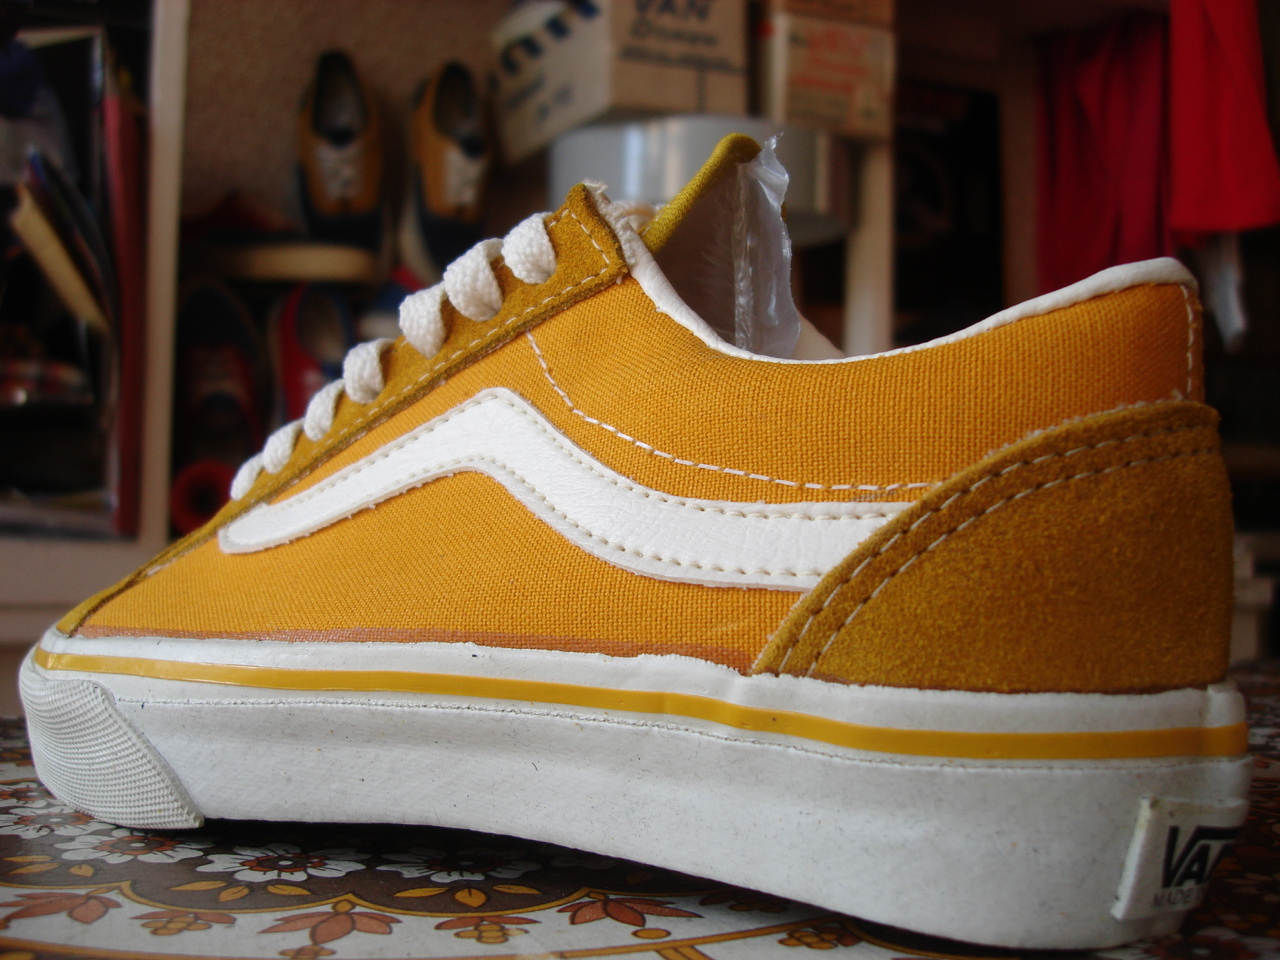 6a91be5000edc9 vintage vans style  36 old skool mustard suede canvas made in usa circa  1990 new in box. US5 UK4.5